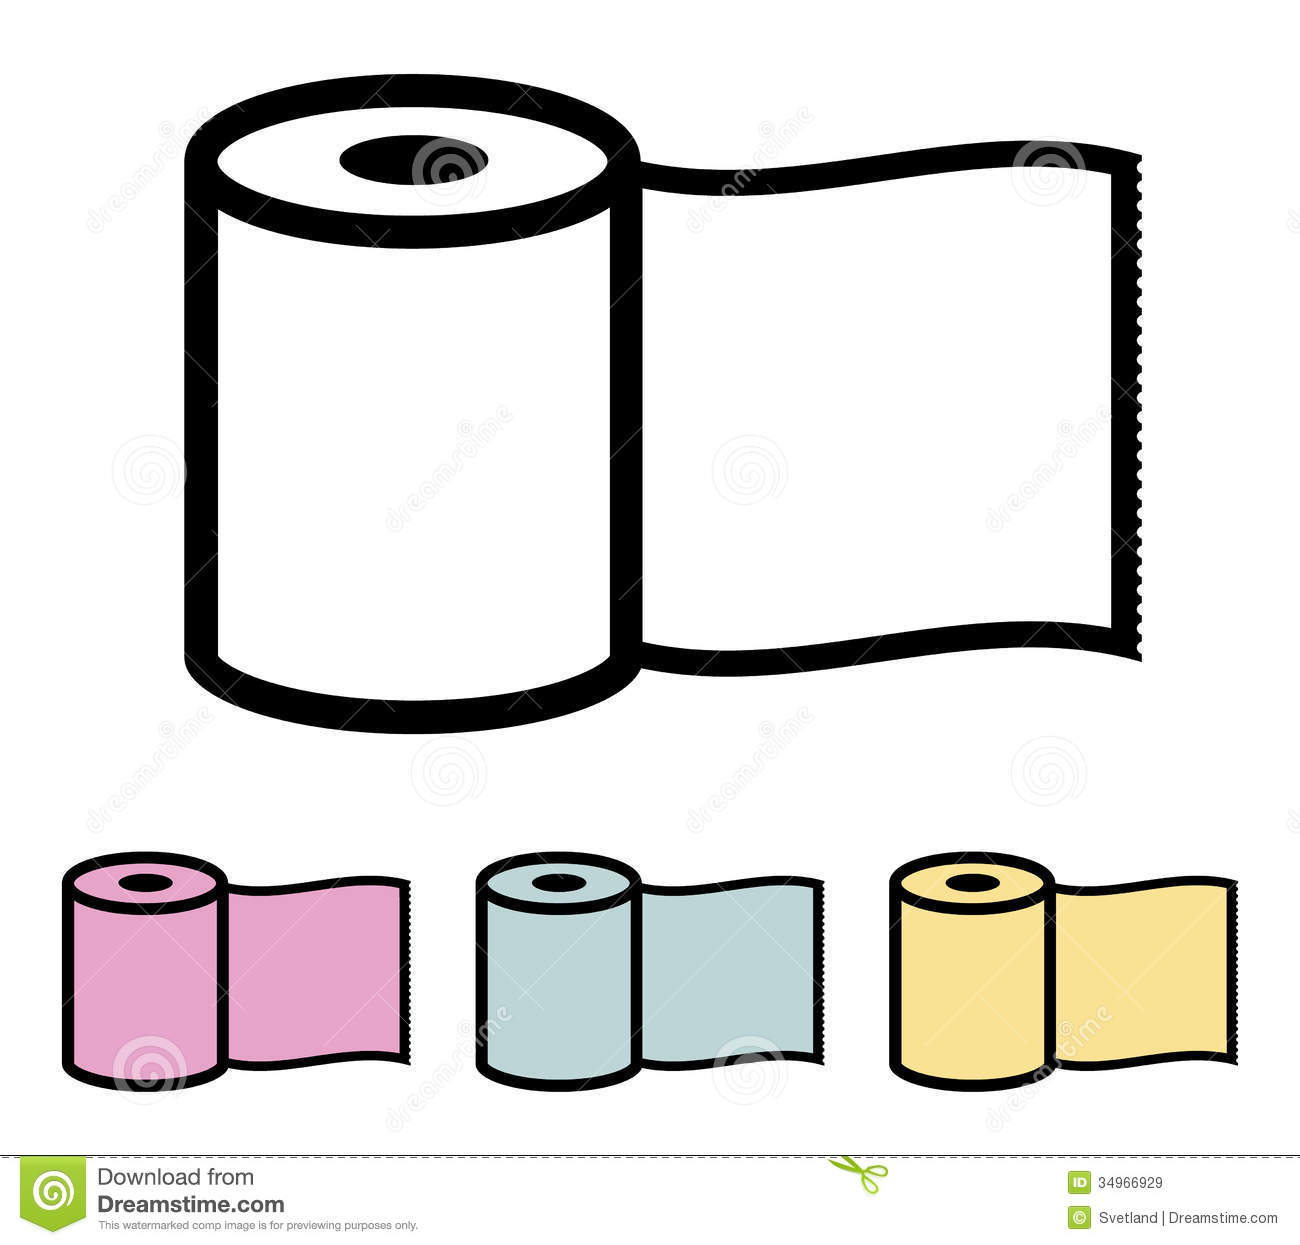 Toilet Paper Roll Royalty Free Stock Images   Image  34966929. Toilet Paper Vector